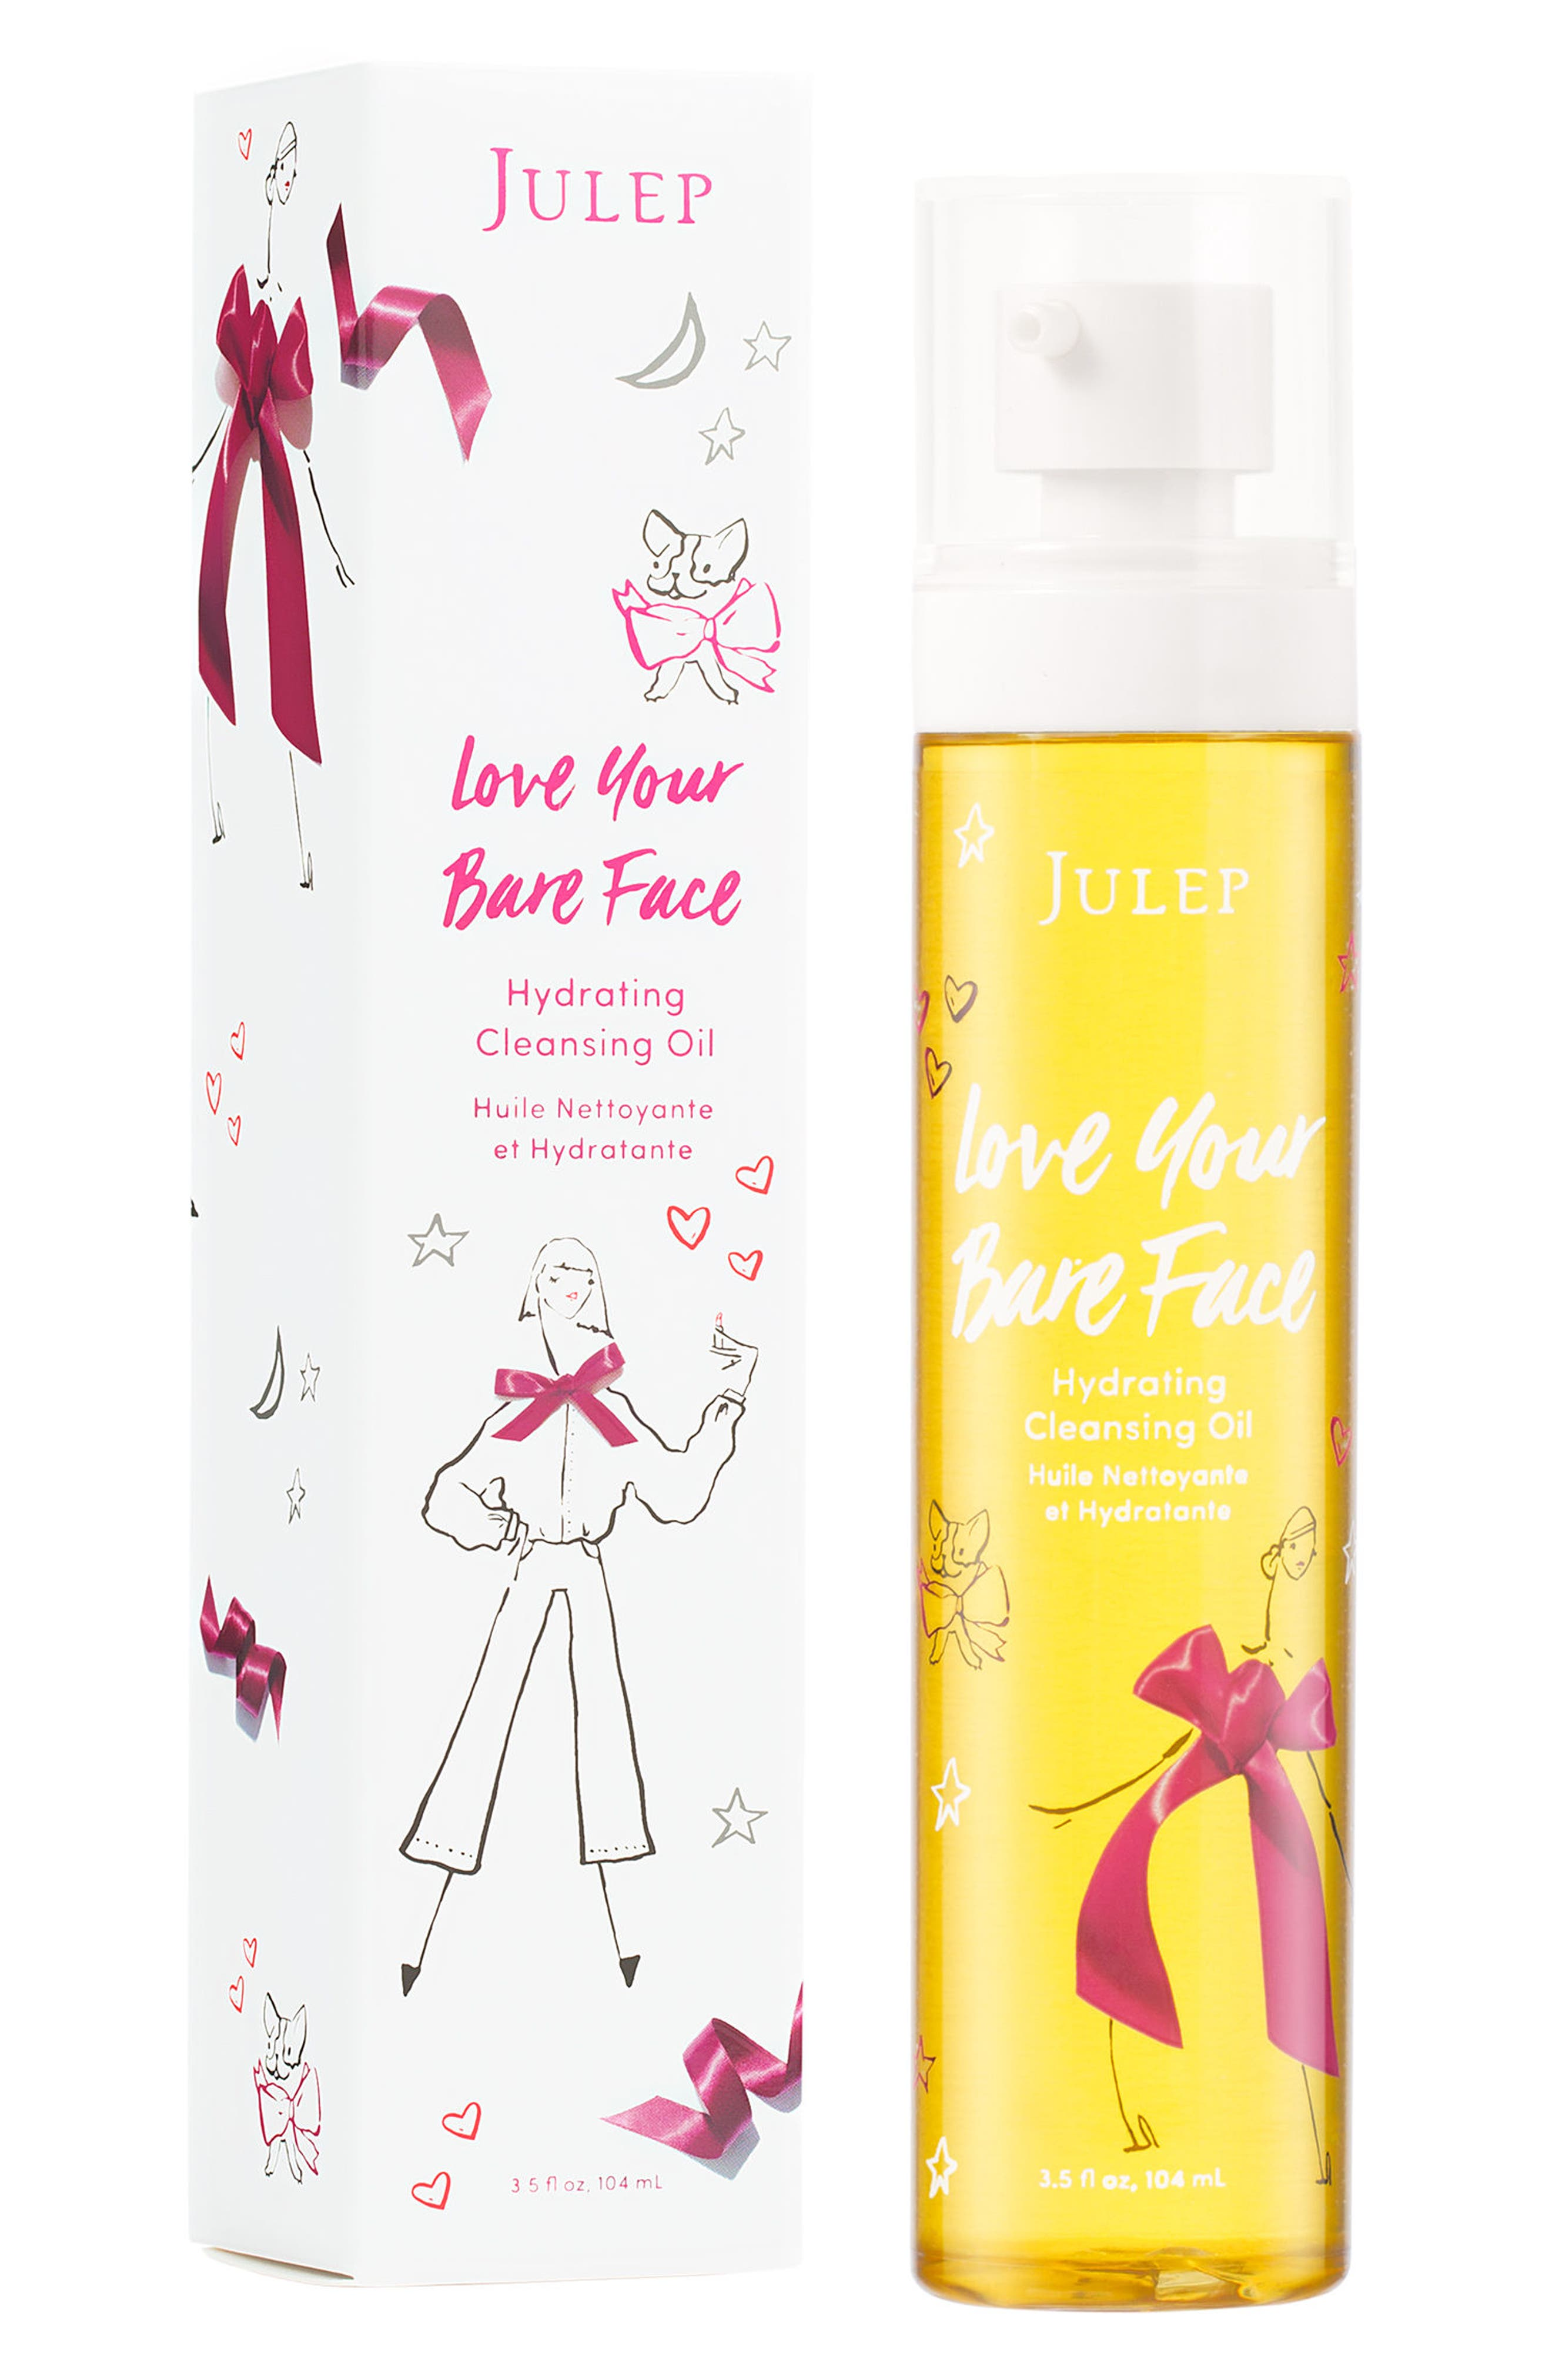 Julep™ love your bare face Hydrating Cleansing Oil (Limited Edition)